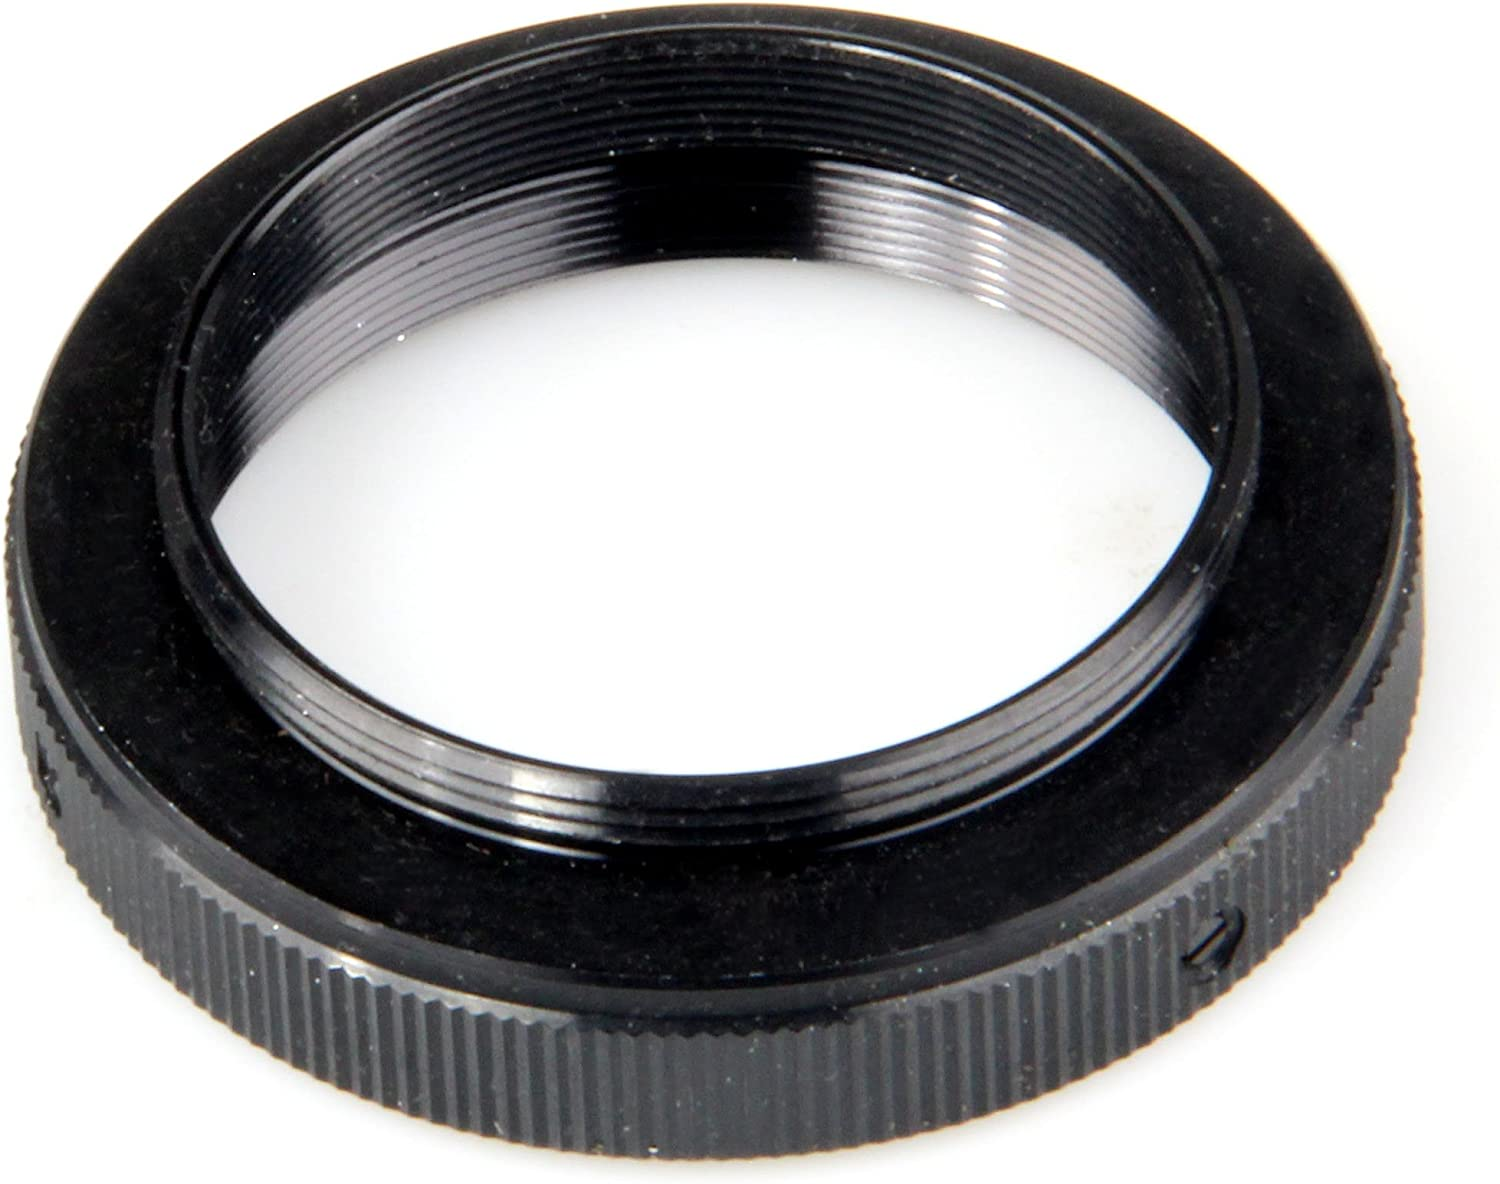 Bower ATPS T-Mount for Pentax S//Universal